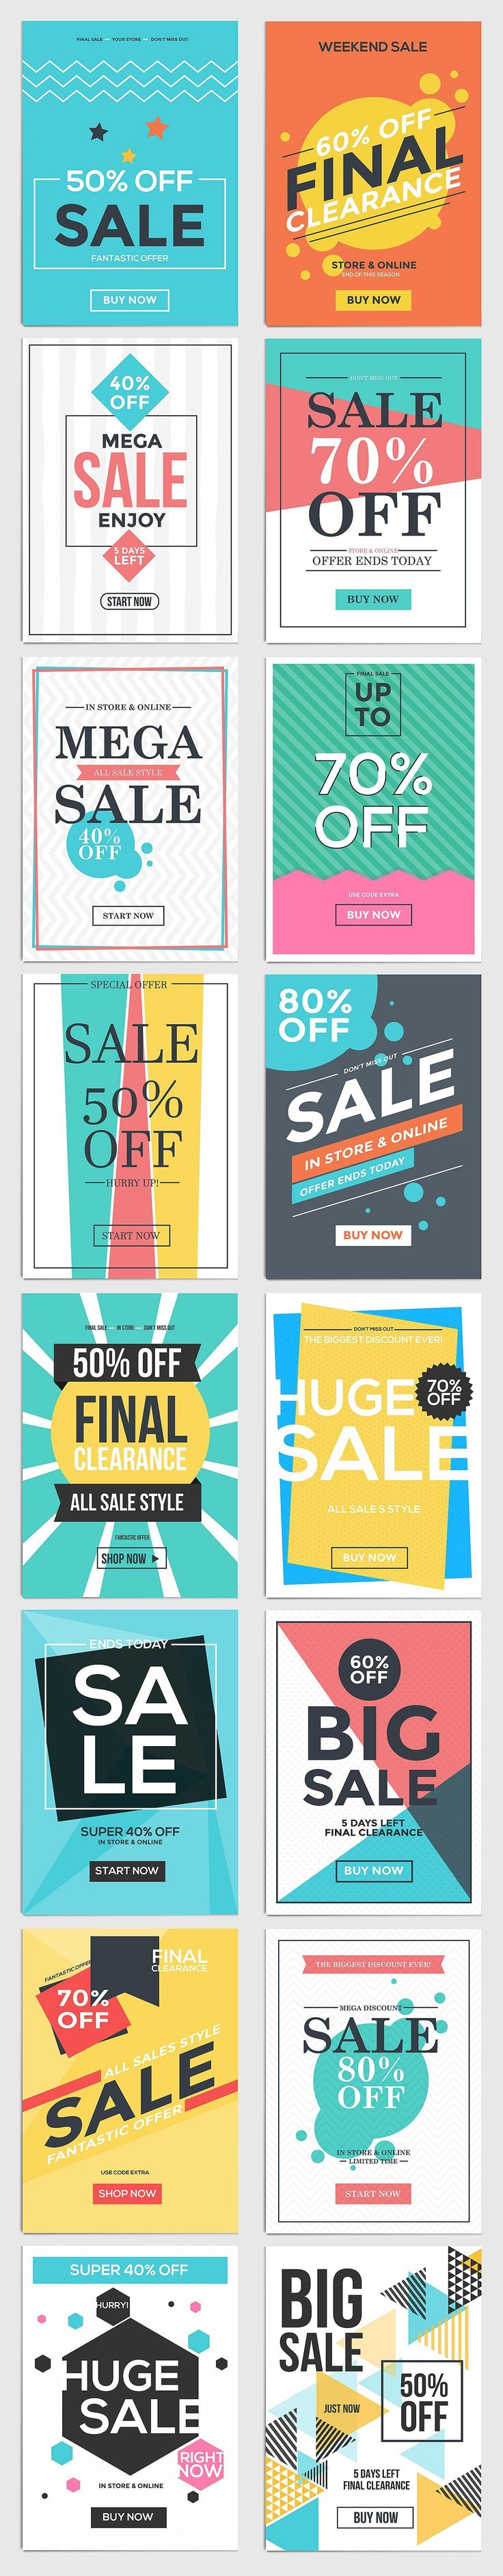 Poster 60 x 80 design - Flat Design Sale Flyer Templates